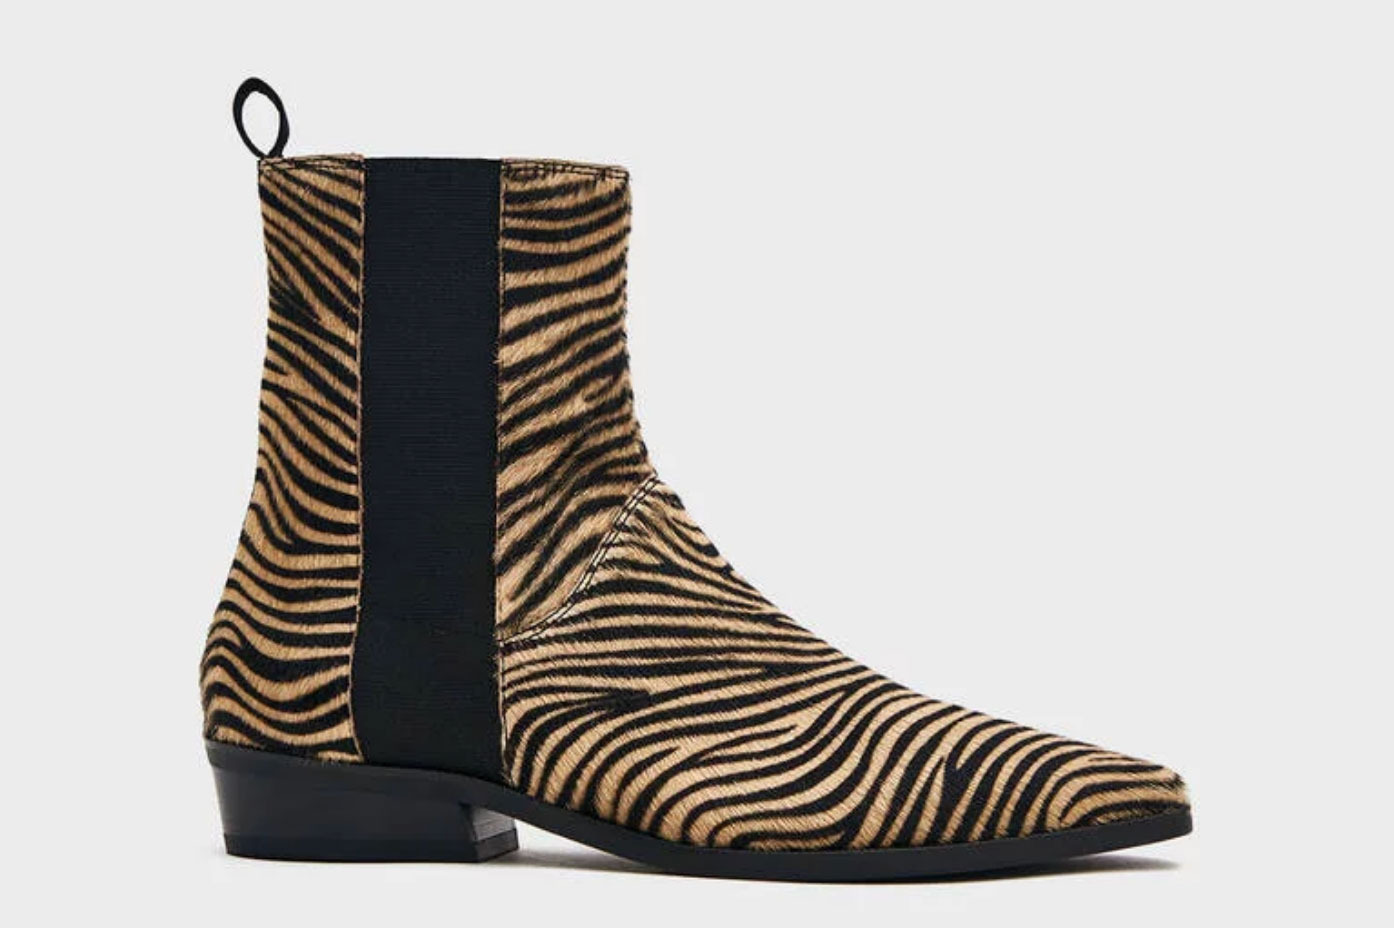 Atelier by Vagabond Alison Pull-On Boot in Zebra